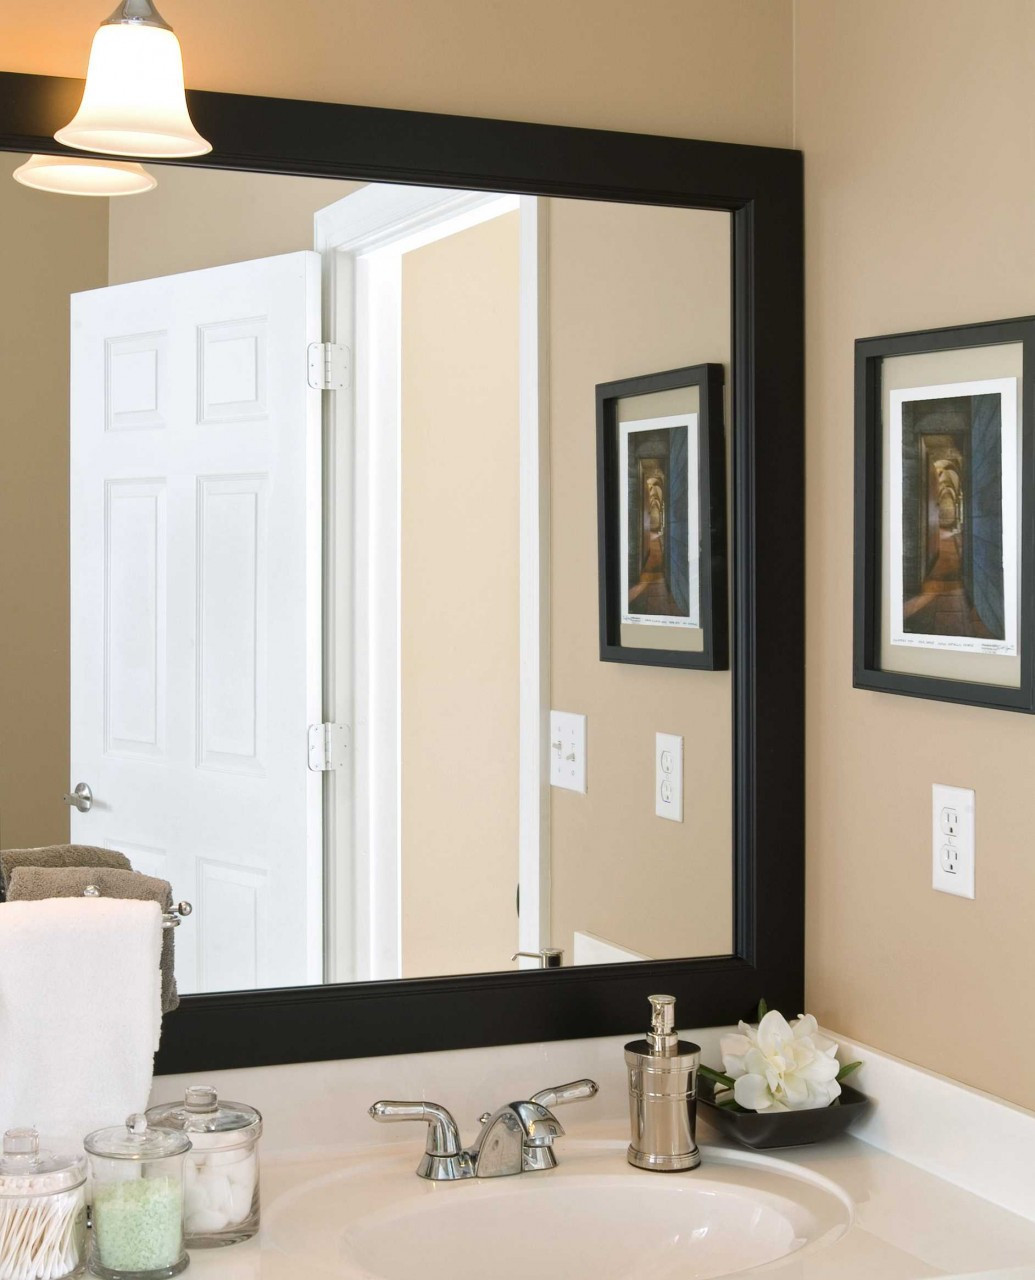 Awesome Let The Grant Mirror Frame Make A Dramatic Bathroom Renovation